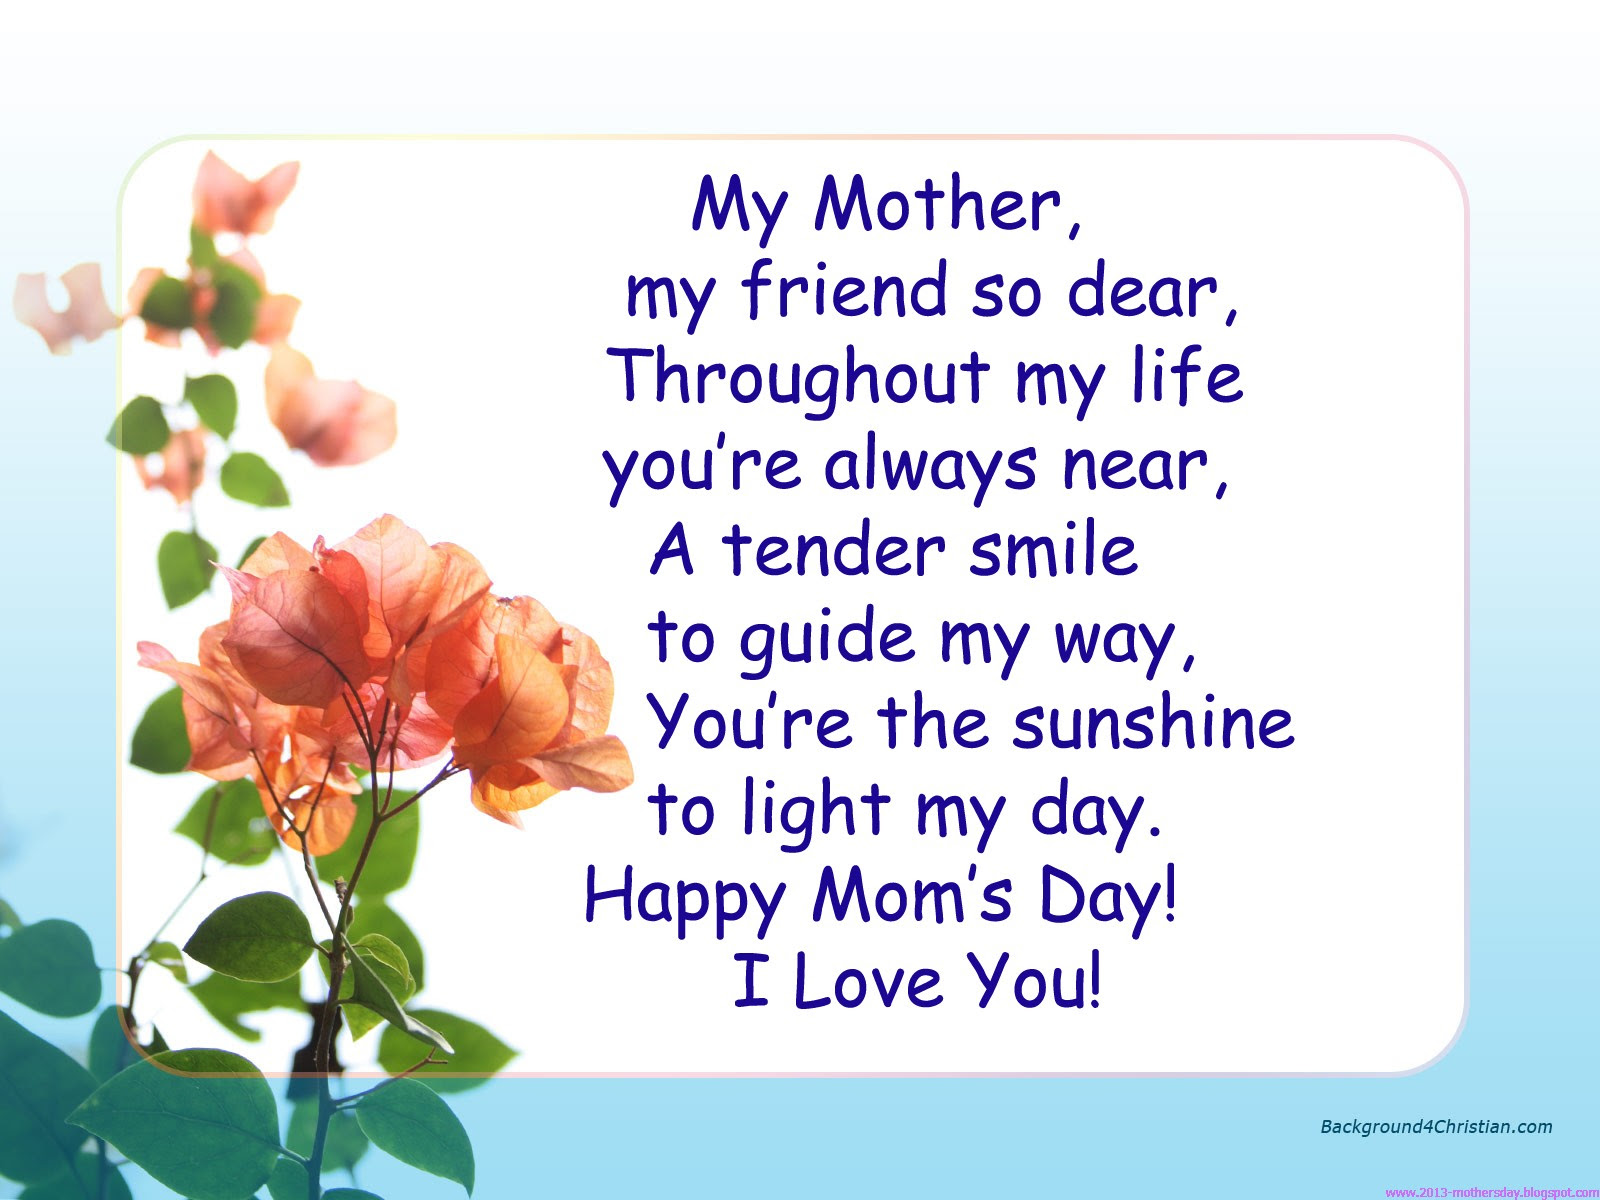 My Mother My Friend So Dear Throughout My Life Youre Always Near